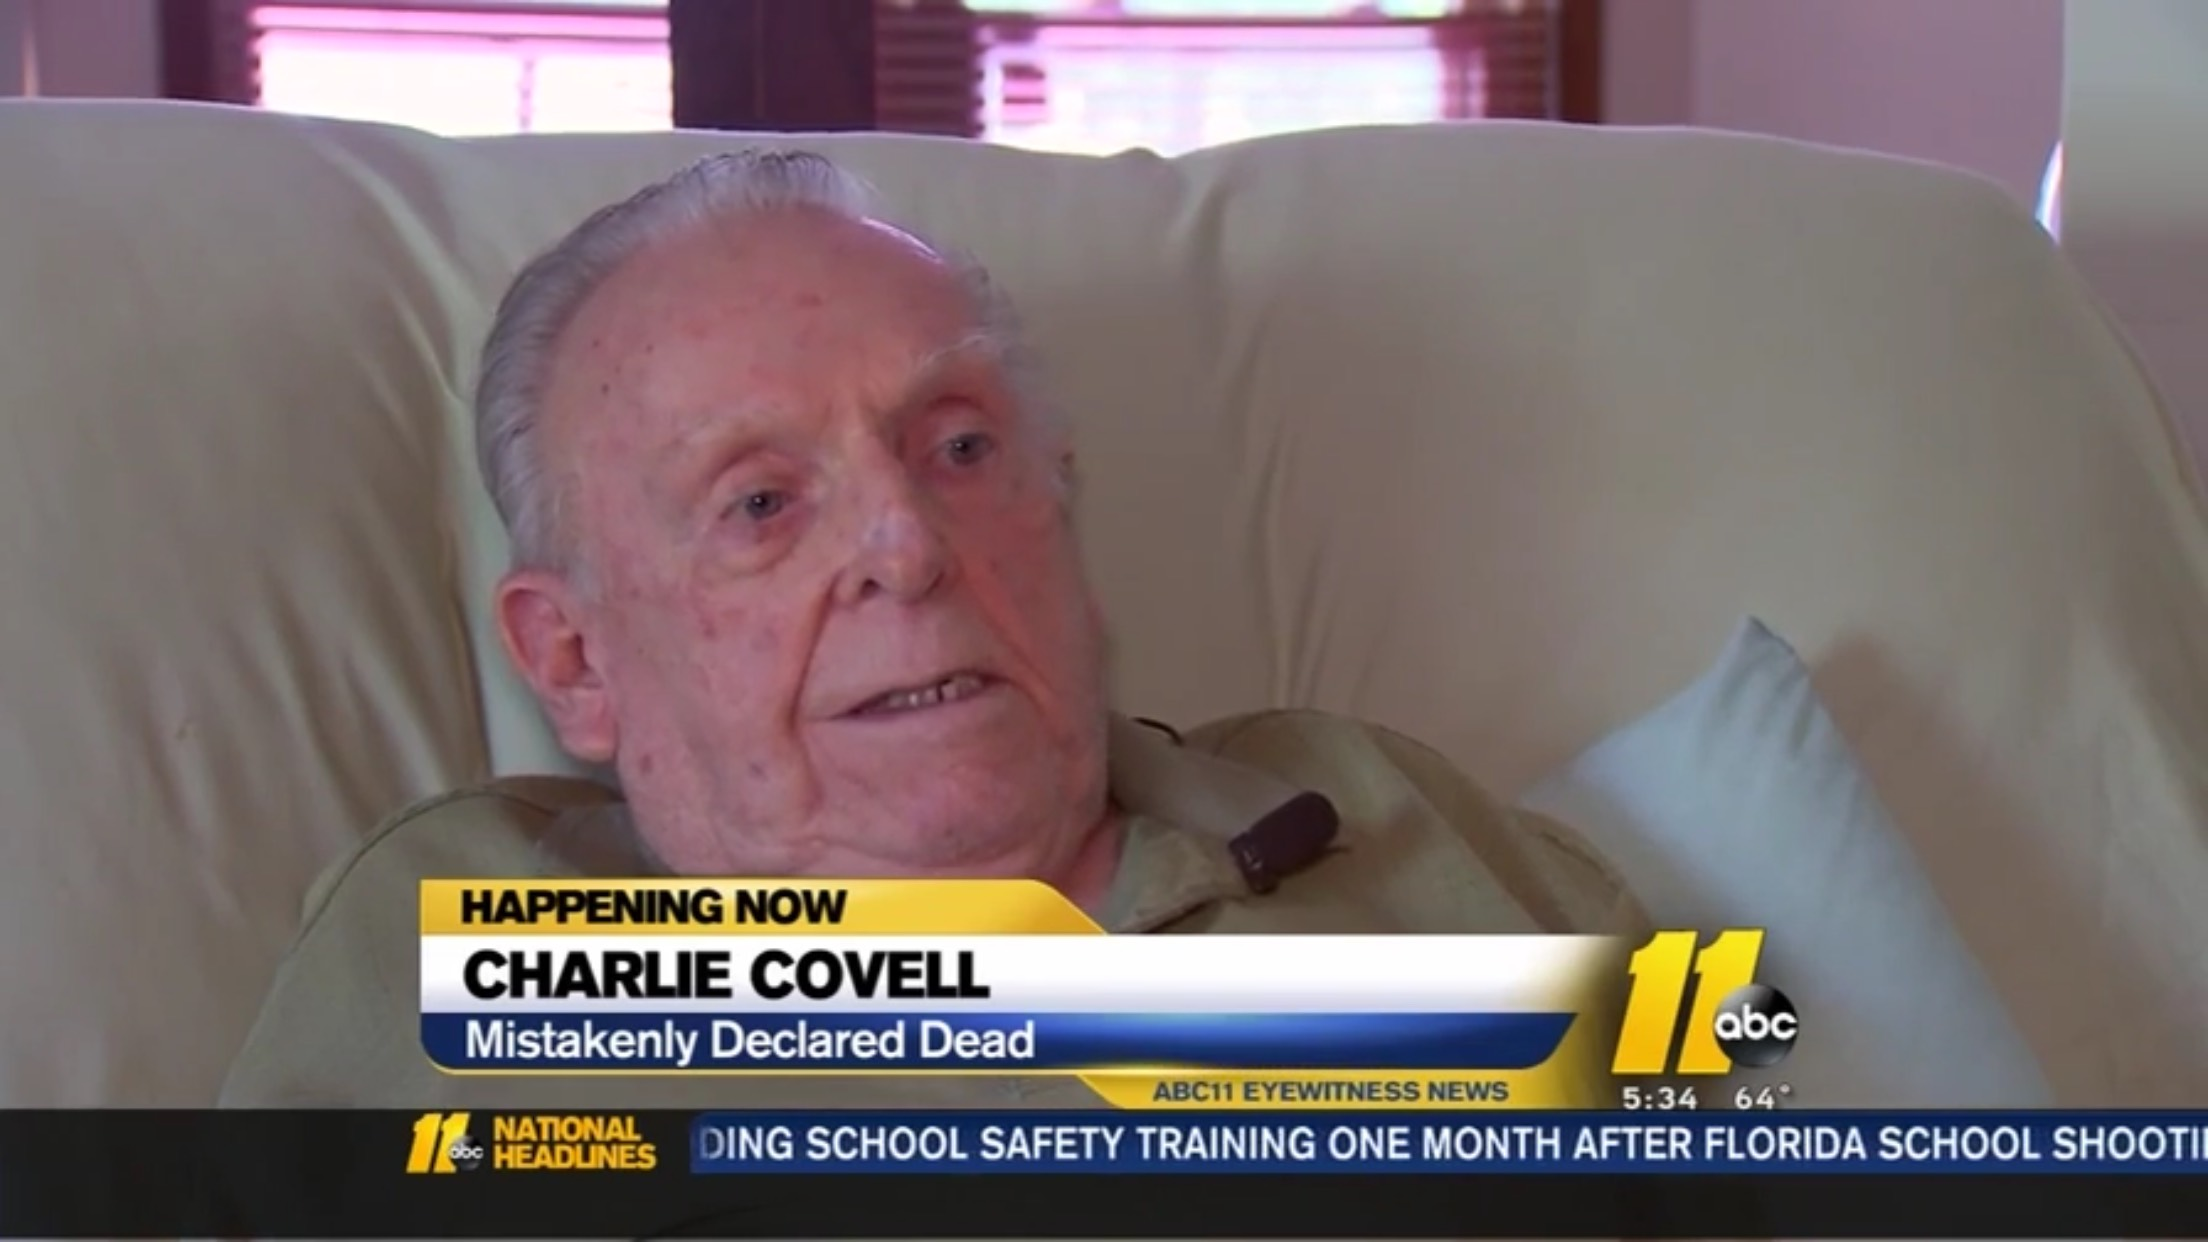 Charlie Covell: Mistakenly Declared Dead